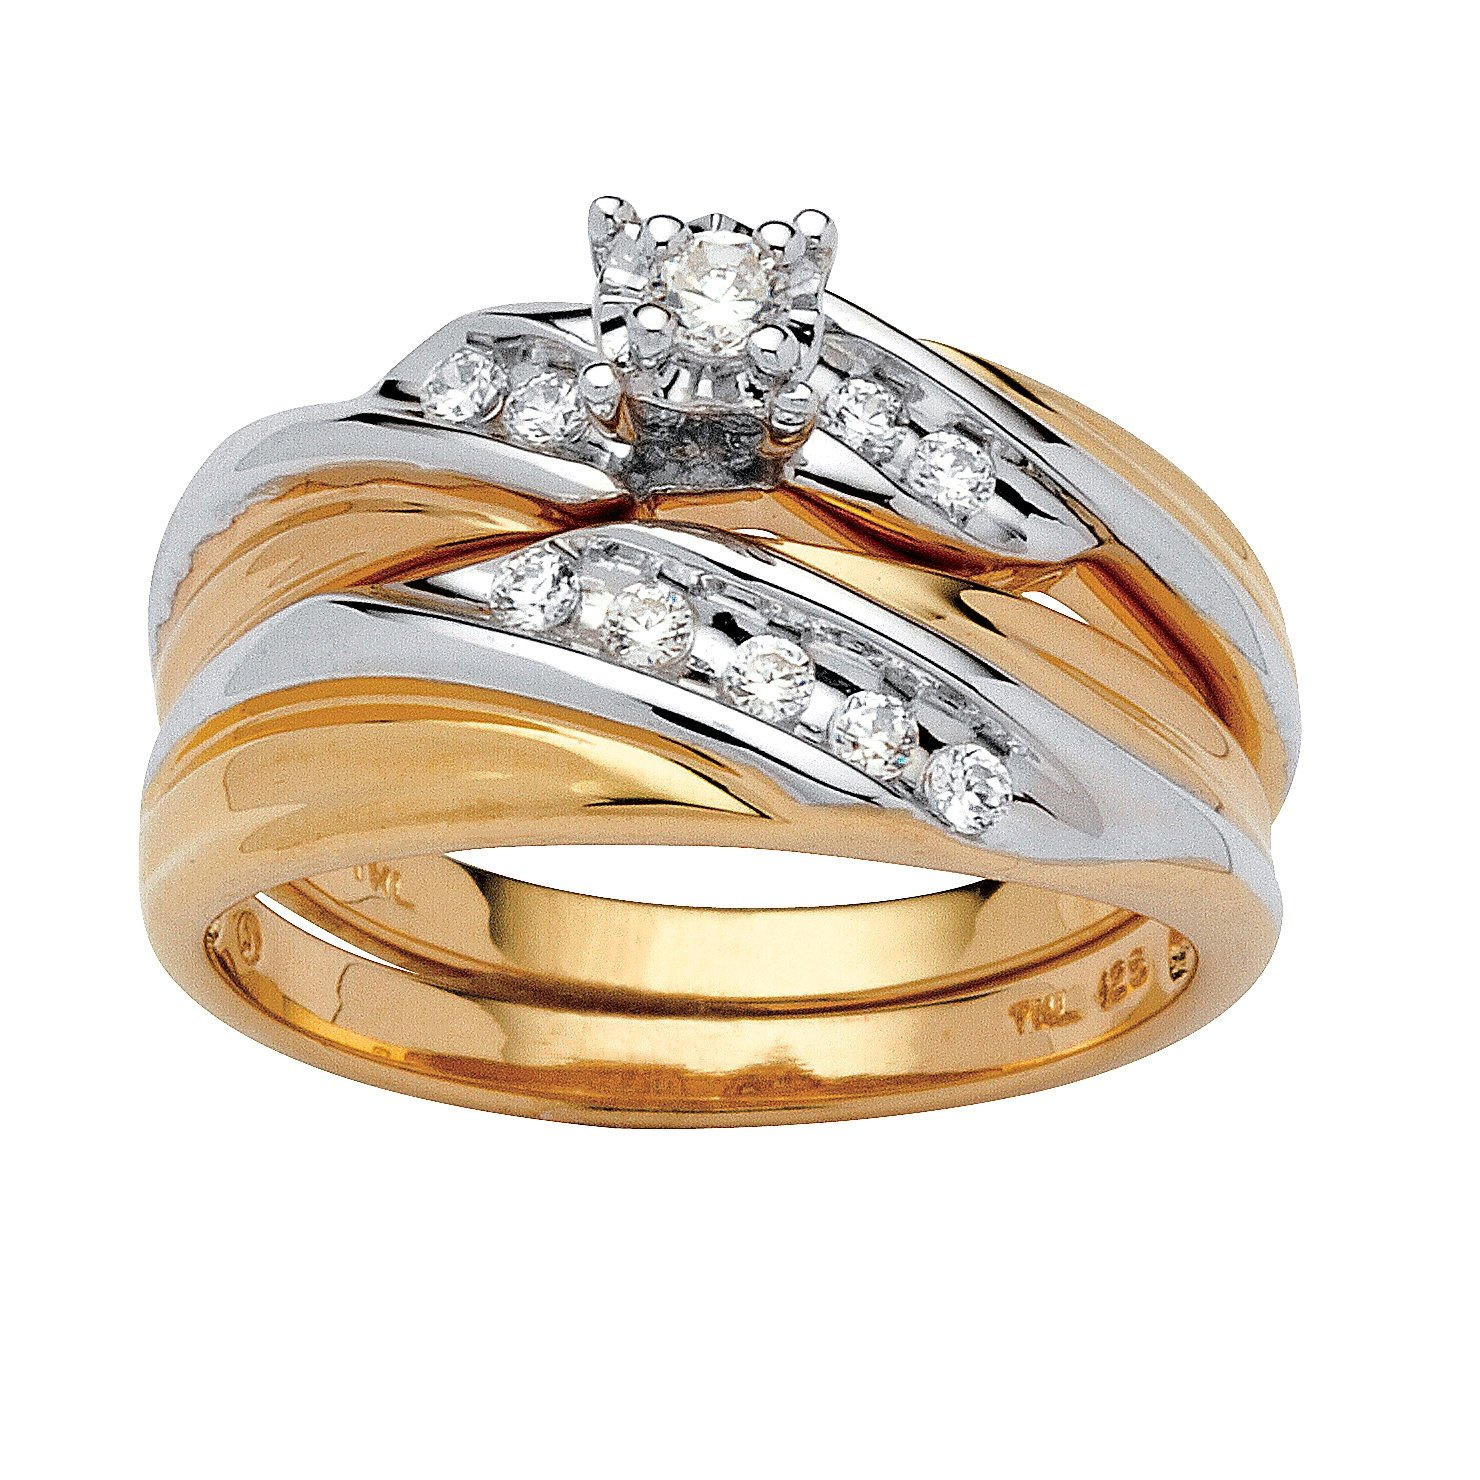 White Cubic Zirconia Two-Tone 18k Gold over .925 Sterling Silver 2-Piece Bridal Ring Set Size 9